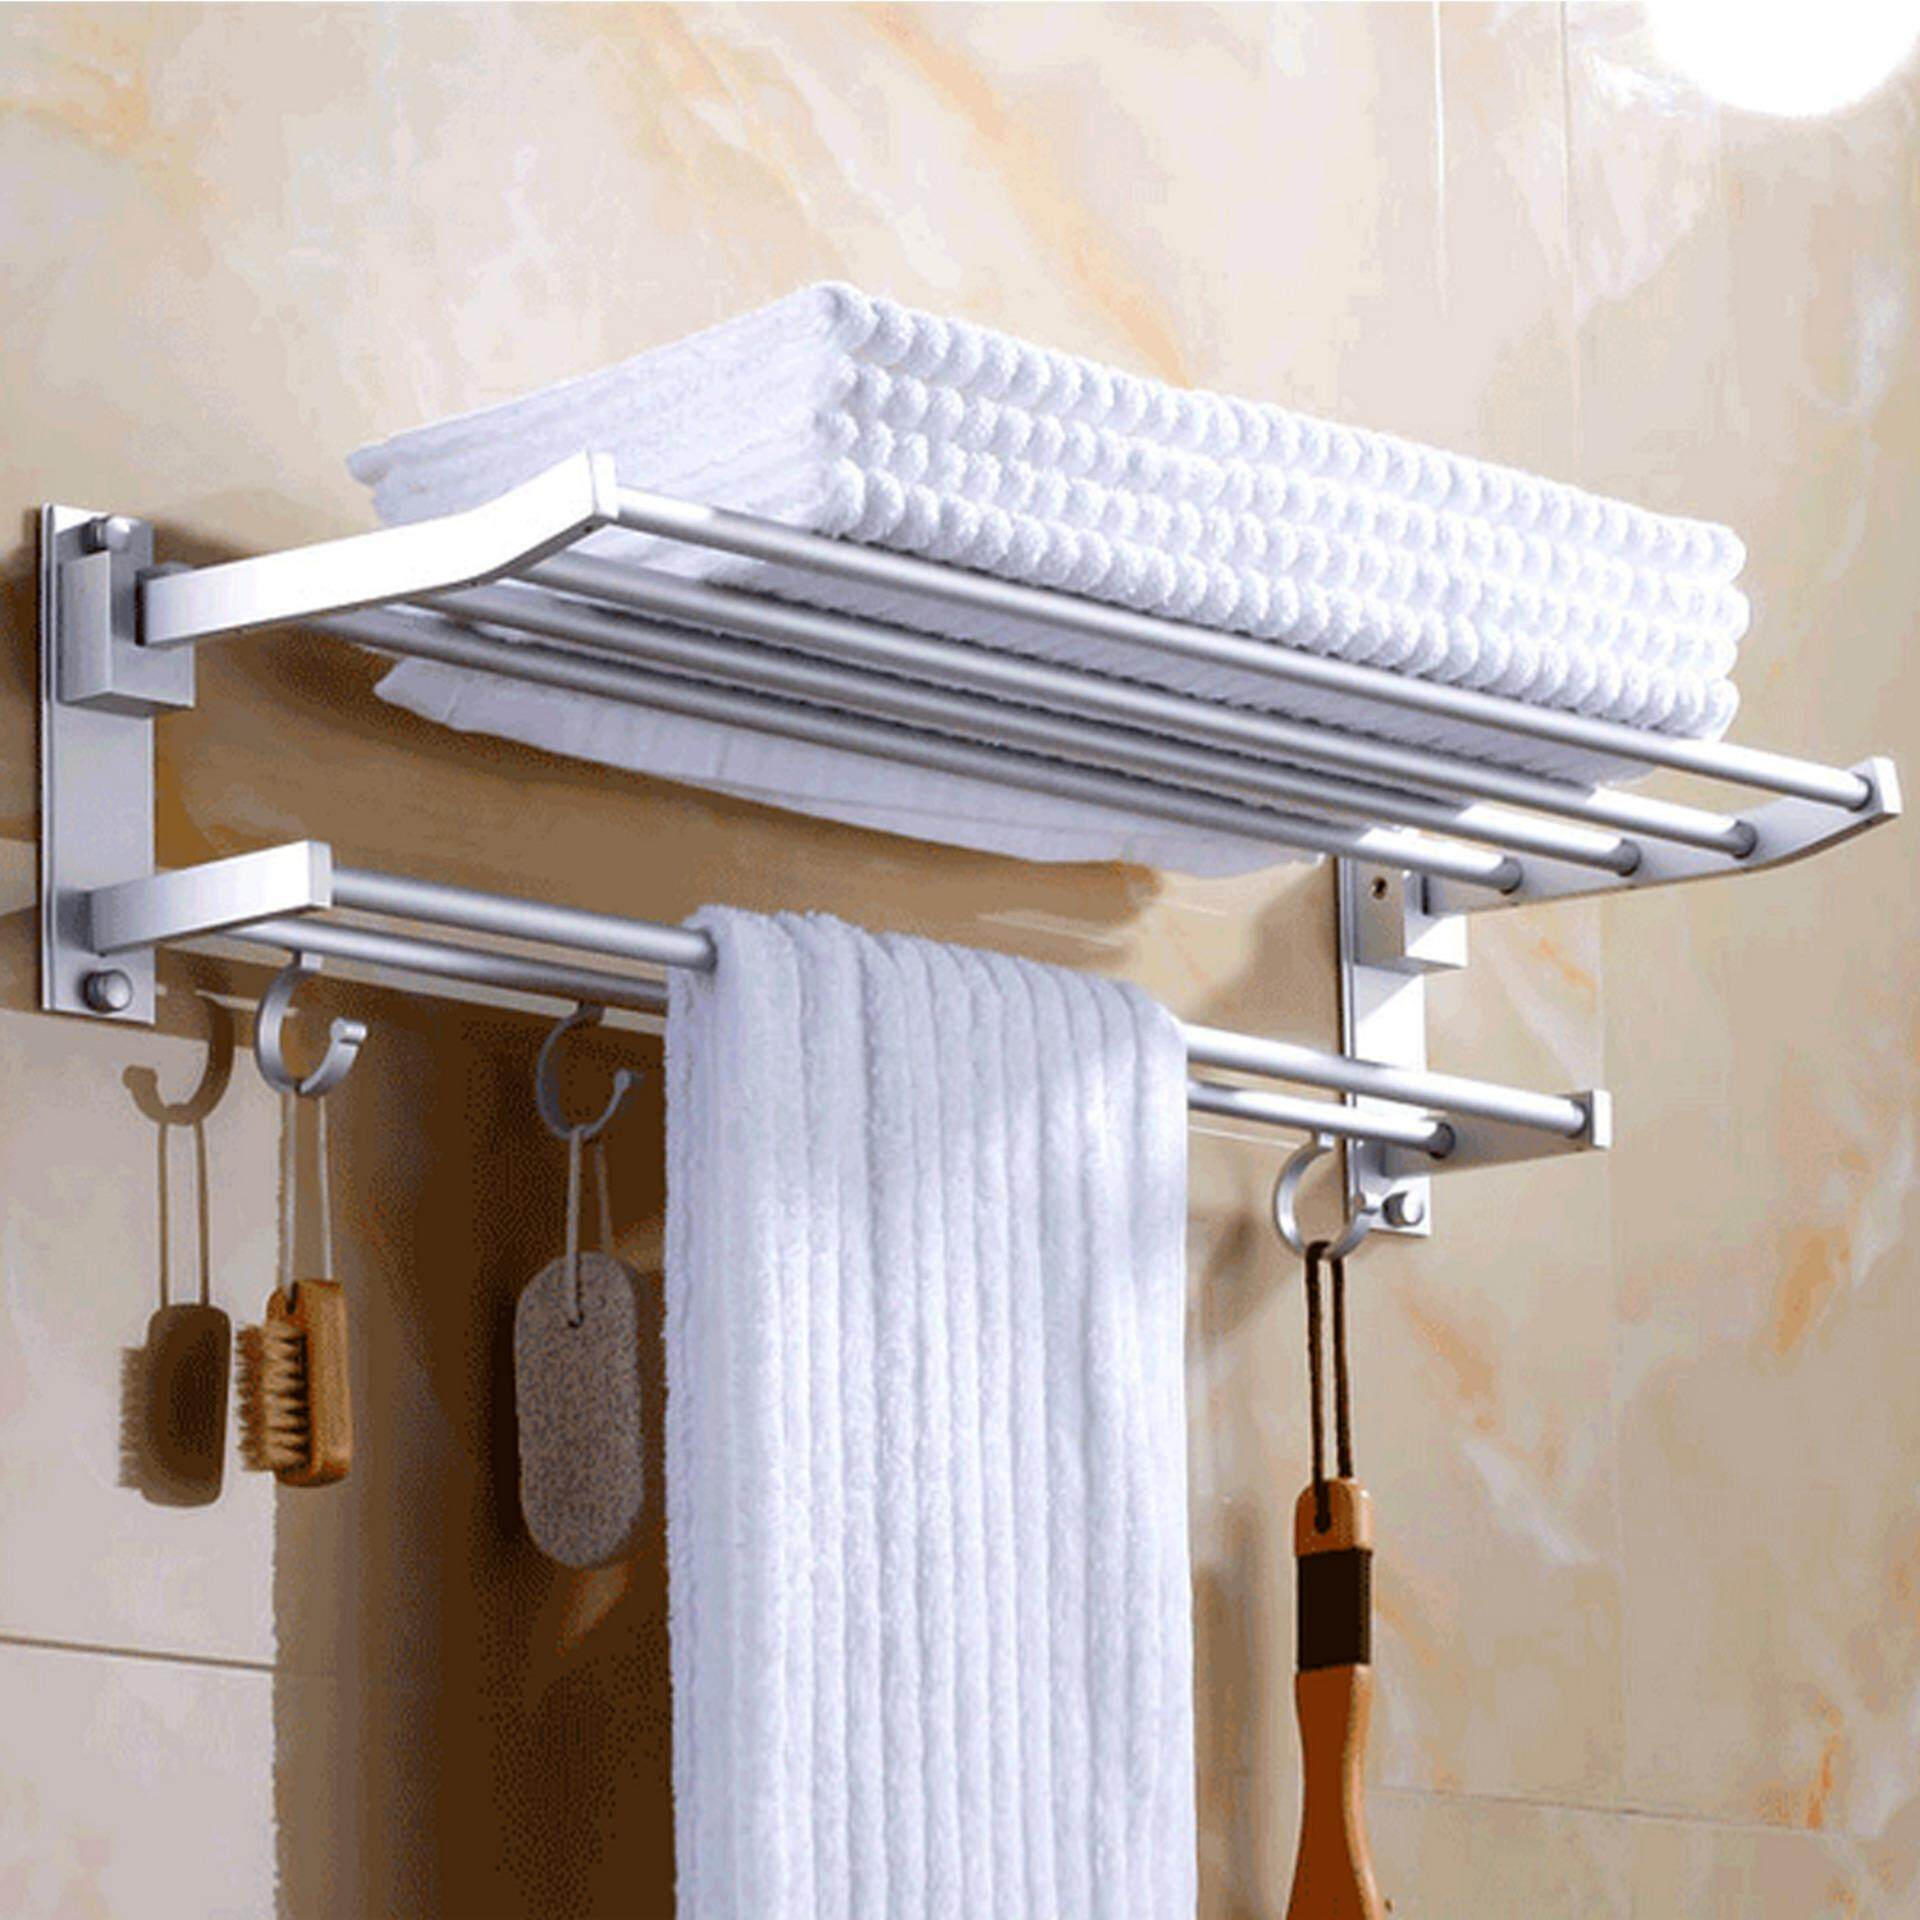 countertop bathroom steel design towel homy the rack holder in stand